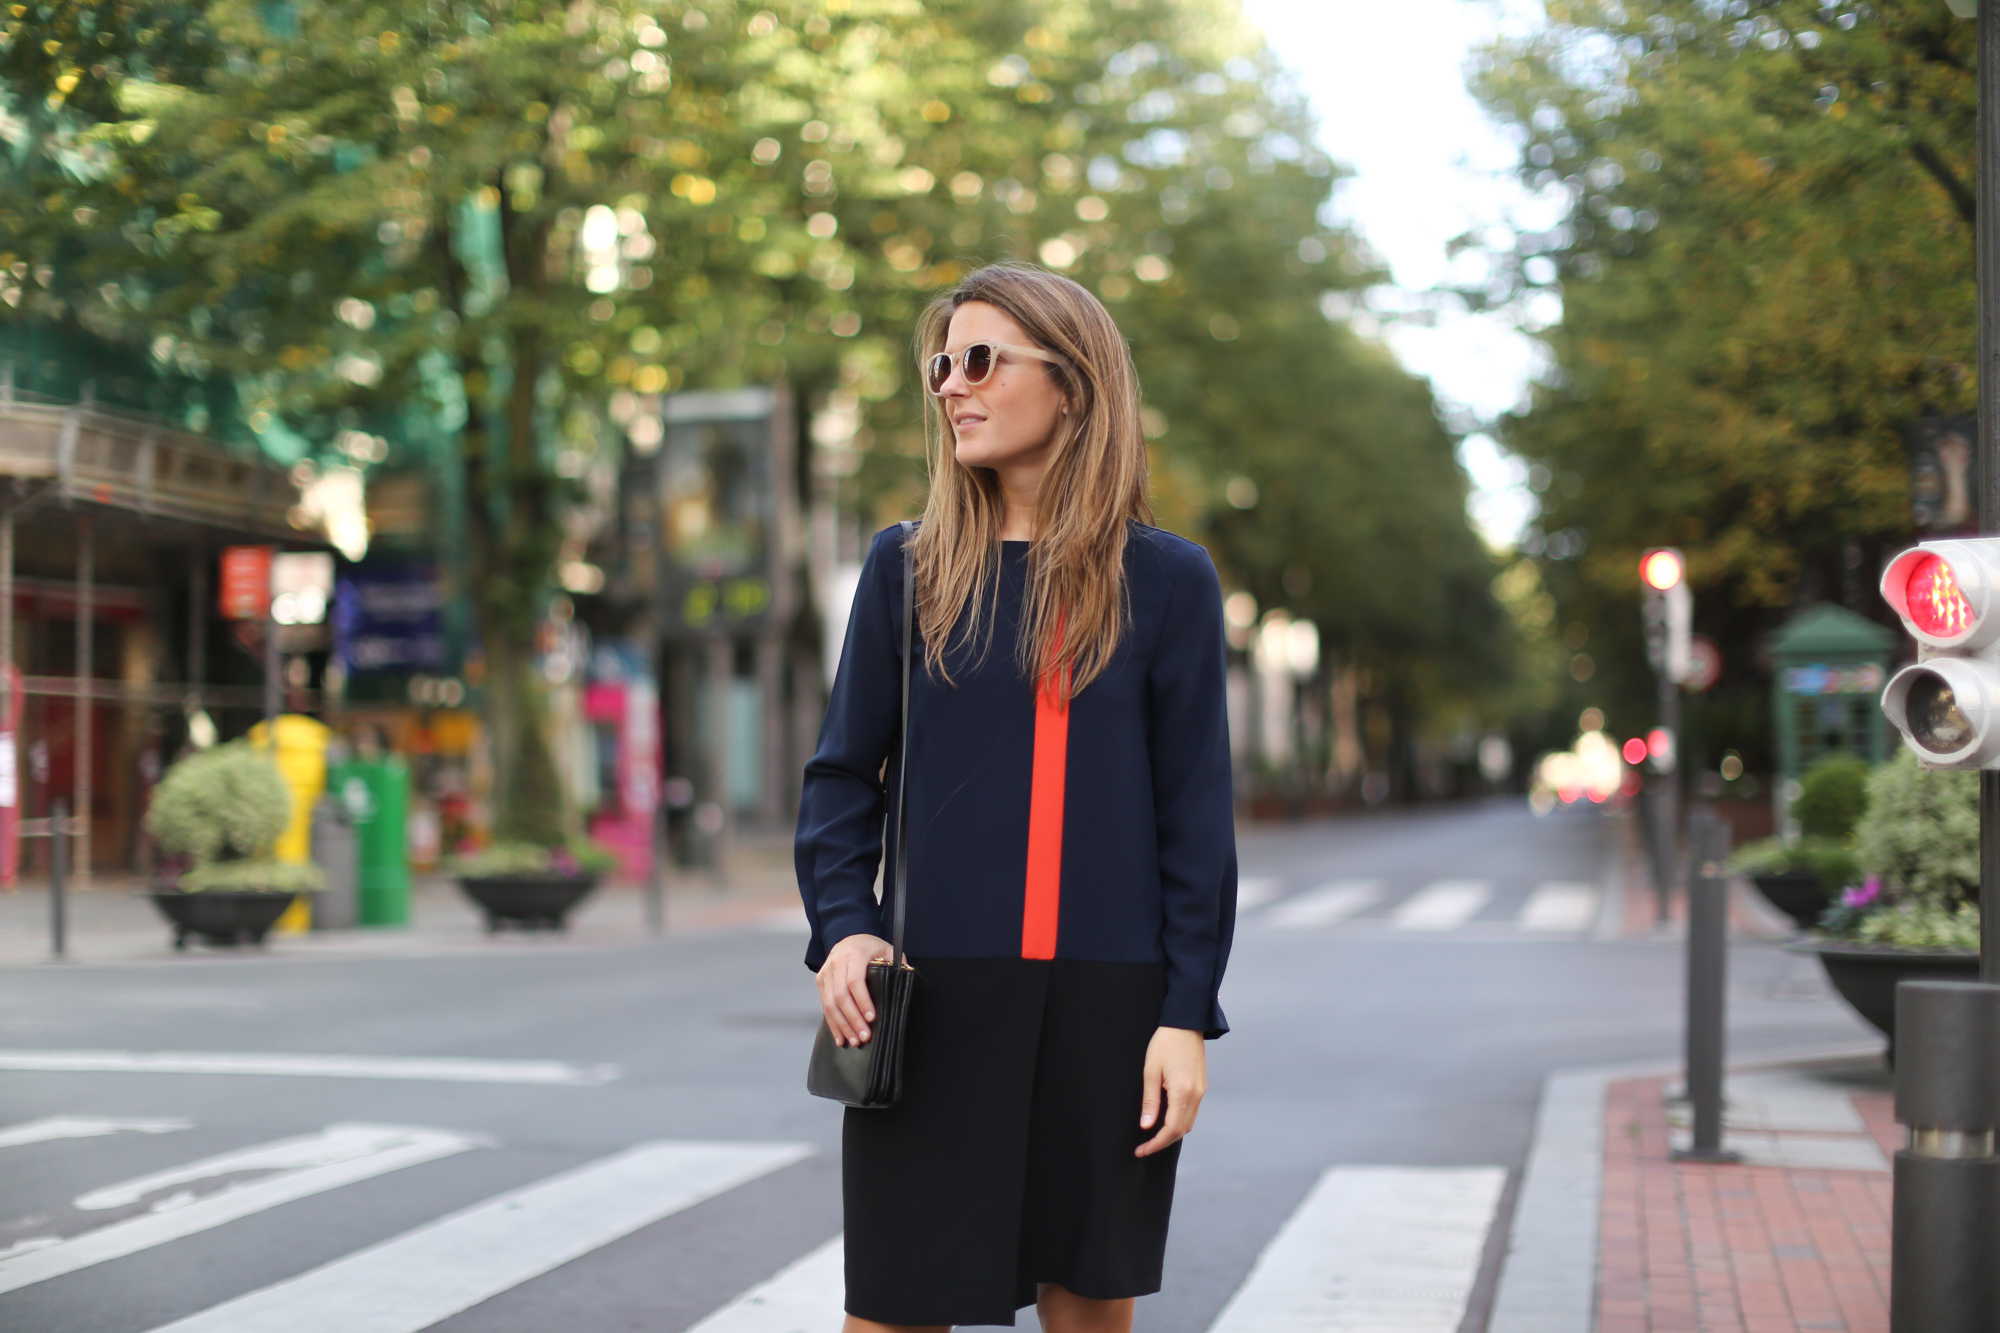 Clochet-streetstyle-zara-orange-navy-dress-celine-trio-bag-3